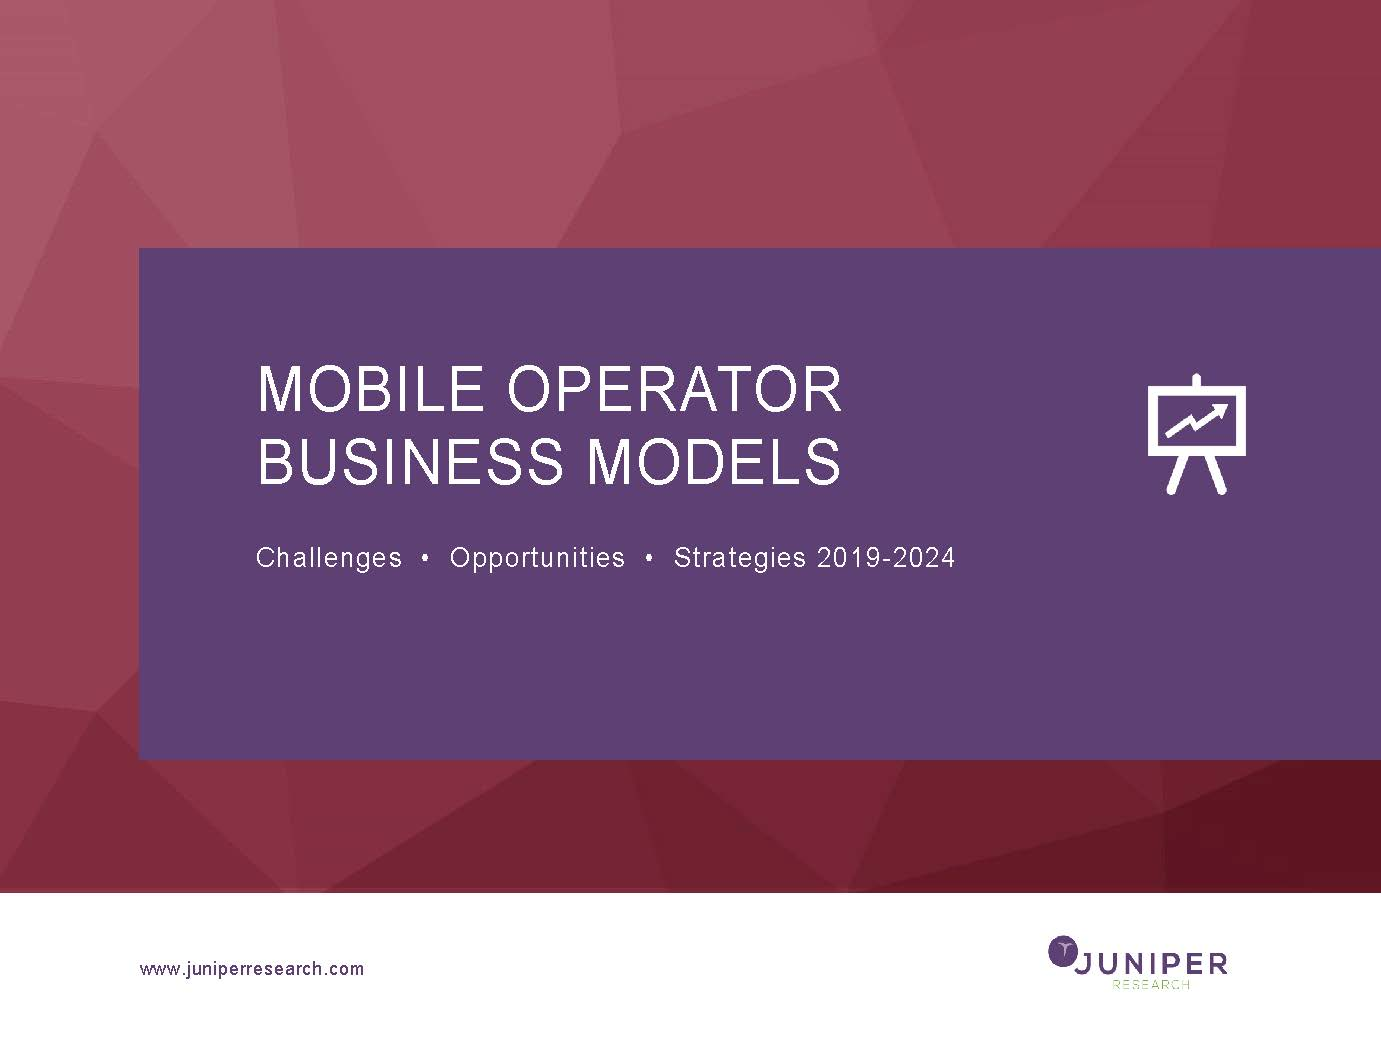 Mobile Operator Business Models